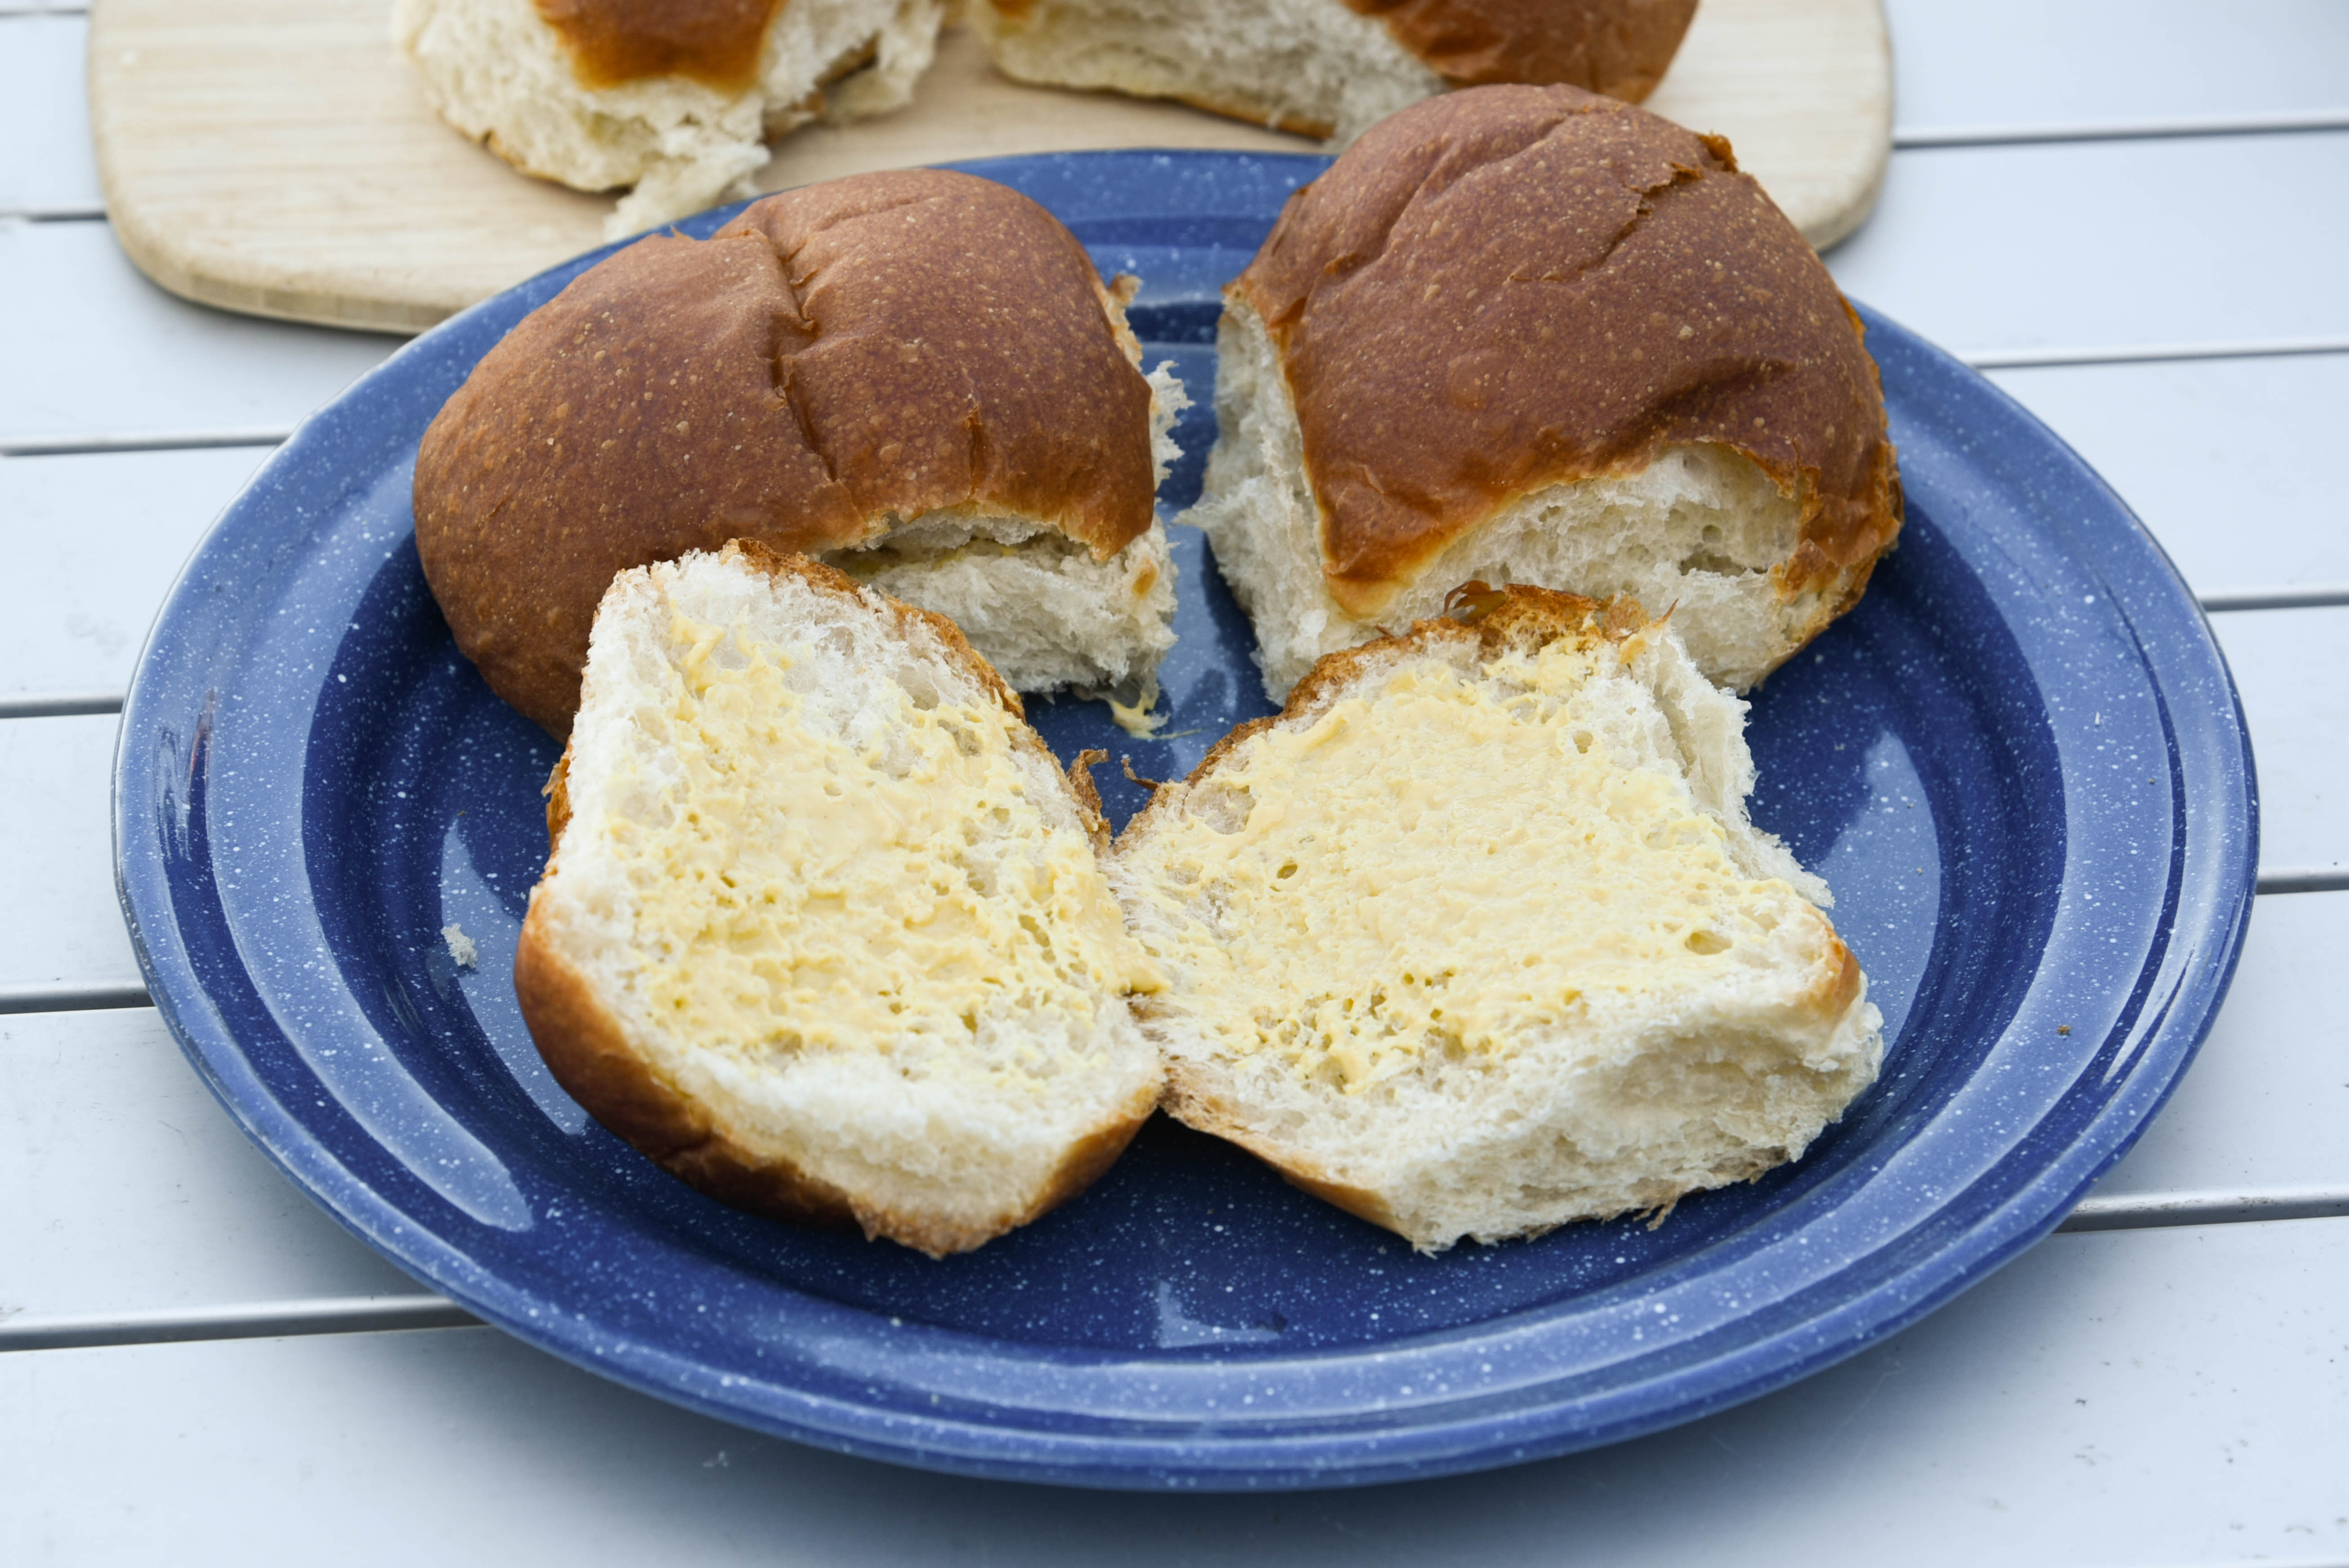 Hawaiian rolls cut in half with both sides buttered.